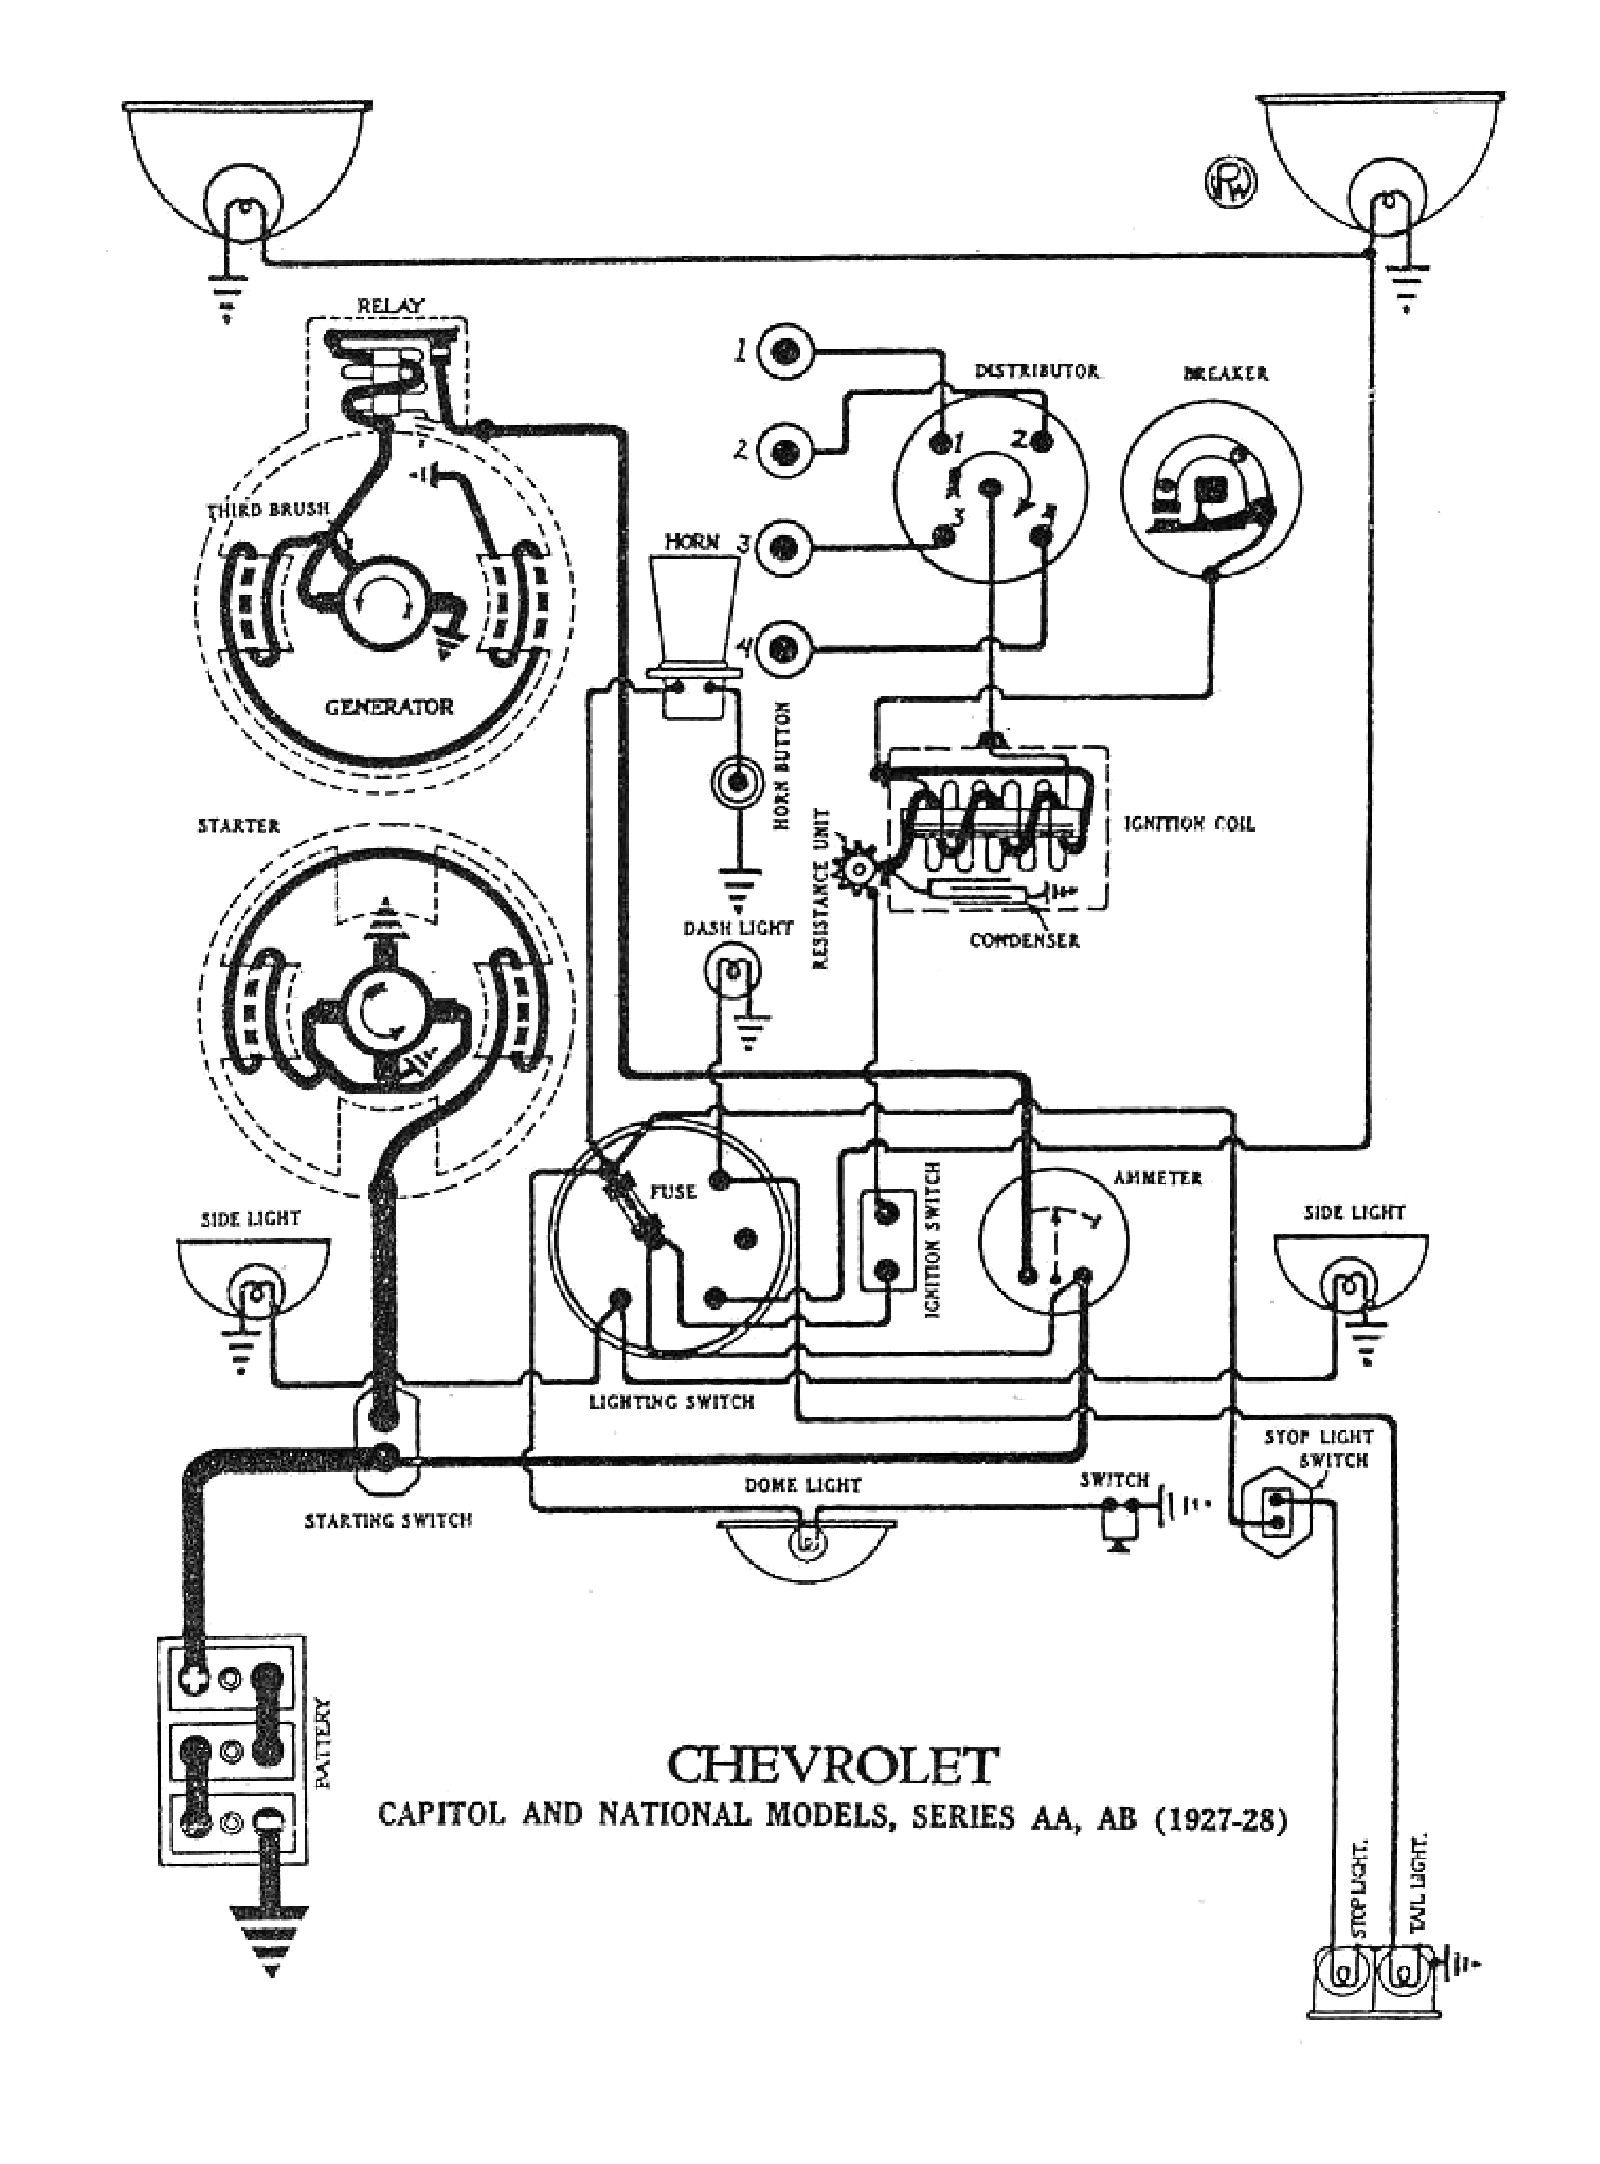 C85DBE5 For 4000 Ford Tractor Wiring Harness Diagram